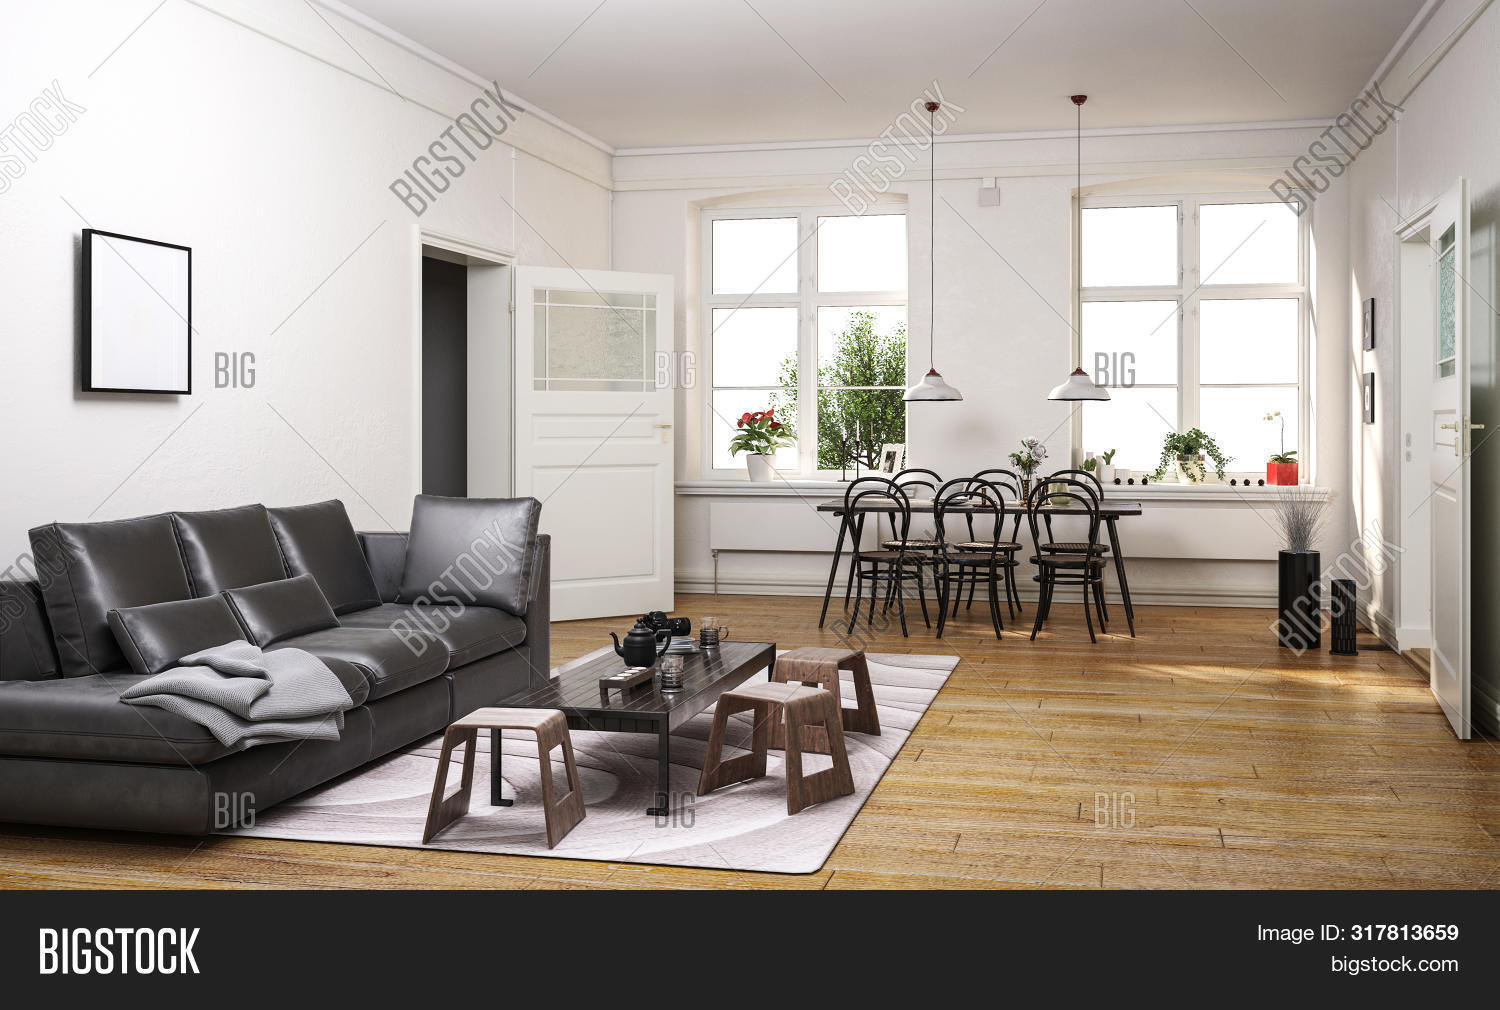 3d,apartment,architecture,black,chairs,comfortable,couch,daylight,decor,design,dining,flat,floor,furnishing,furniture,home,inside,interior,leather,living room,long,lounge,luxury,modern,open-plan,property,receding,render,rendering,sofa,spacious,stools,table,throw,walls,white,windows,wood